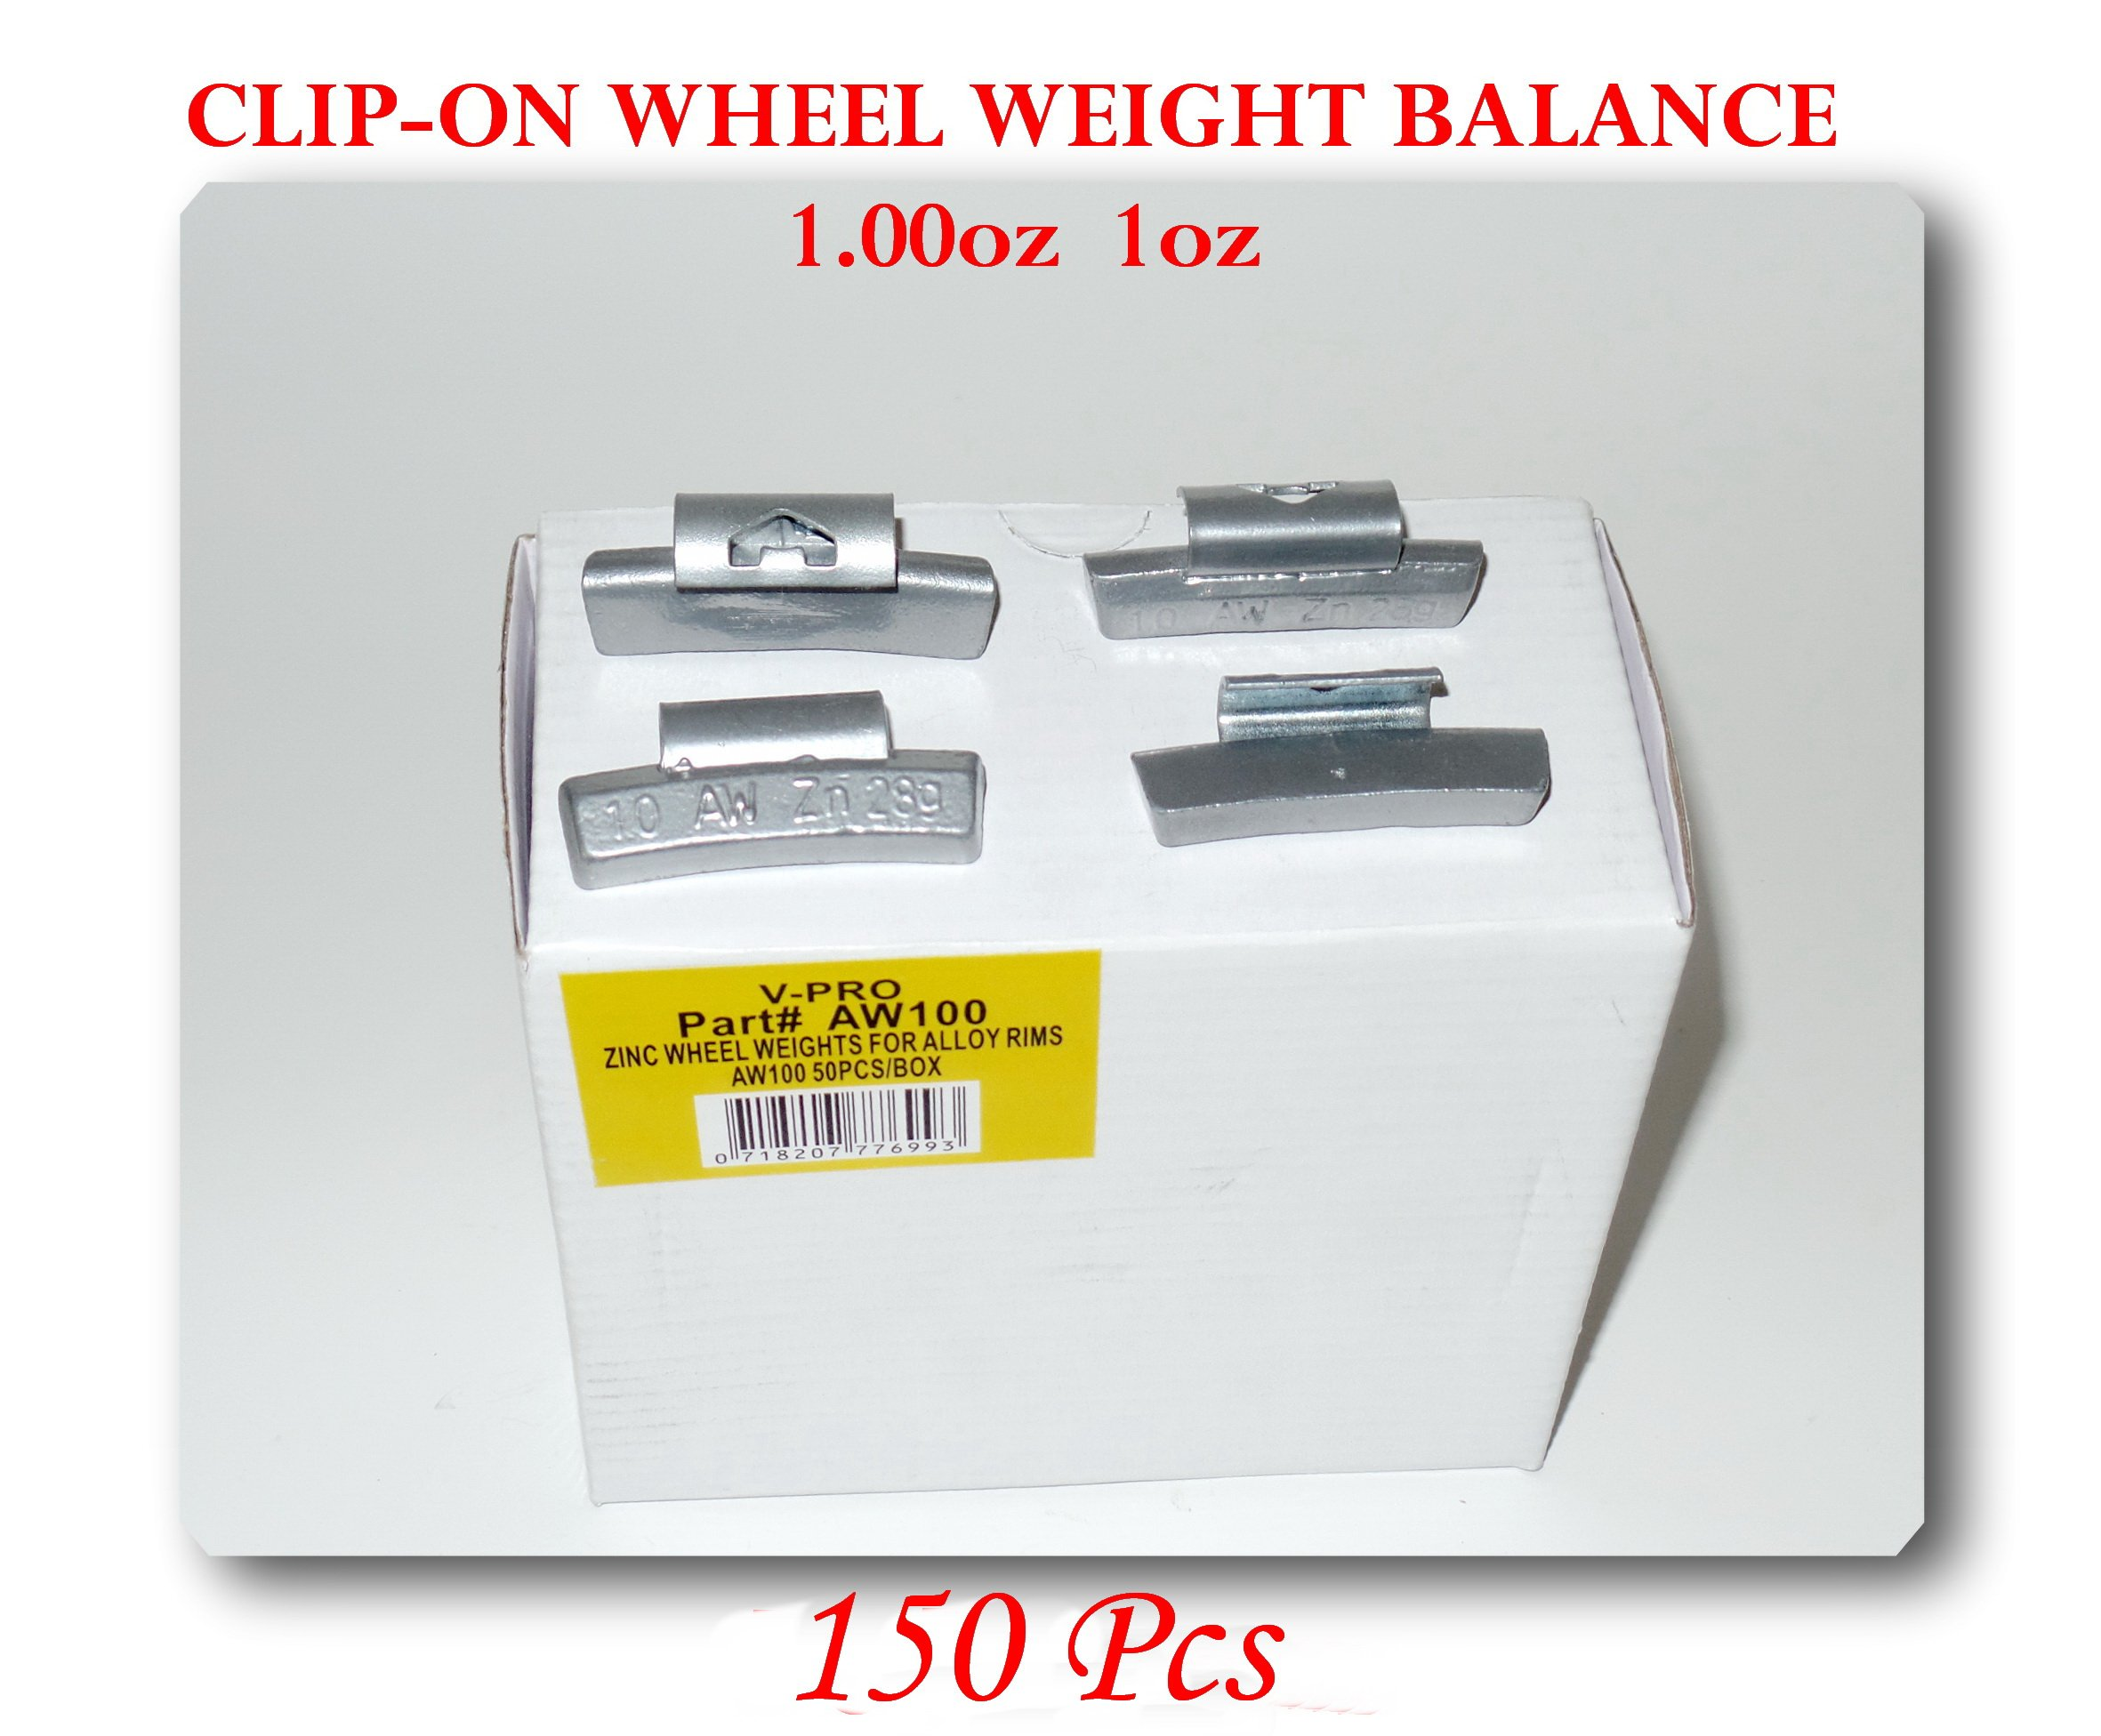 150 Pcs Zn Clip-on Wheel Weight Balance 1oz 1oz Aw1.00oz (Use for All Types of Alloy wheels On Passenger Cars , Trucks , Vans & Motorcycles)